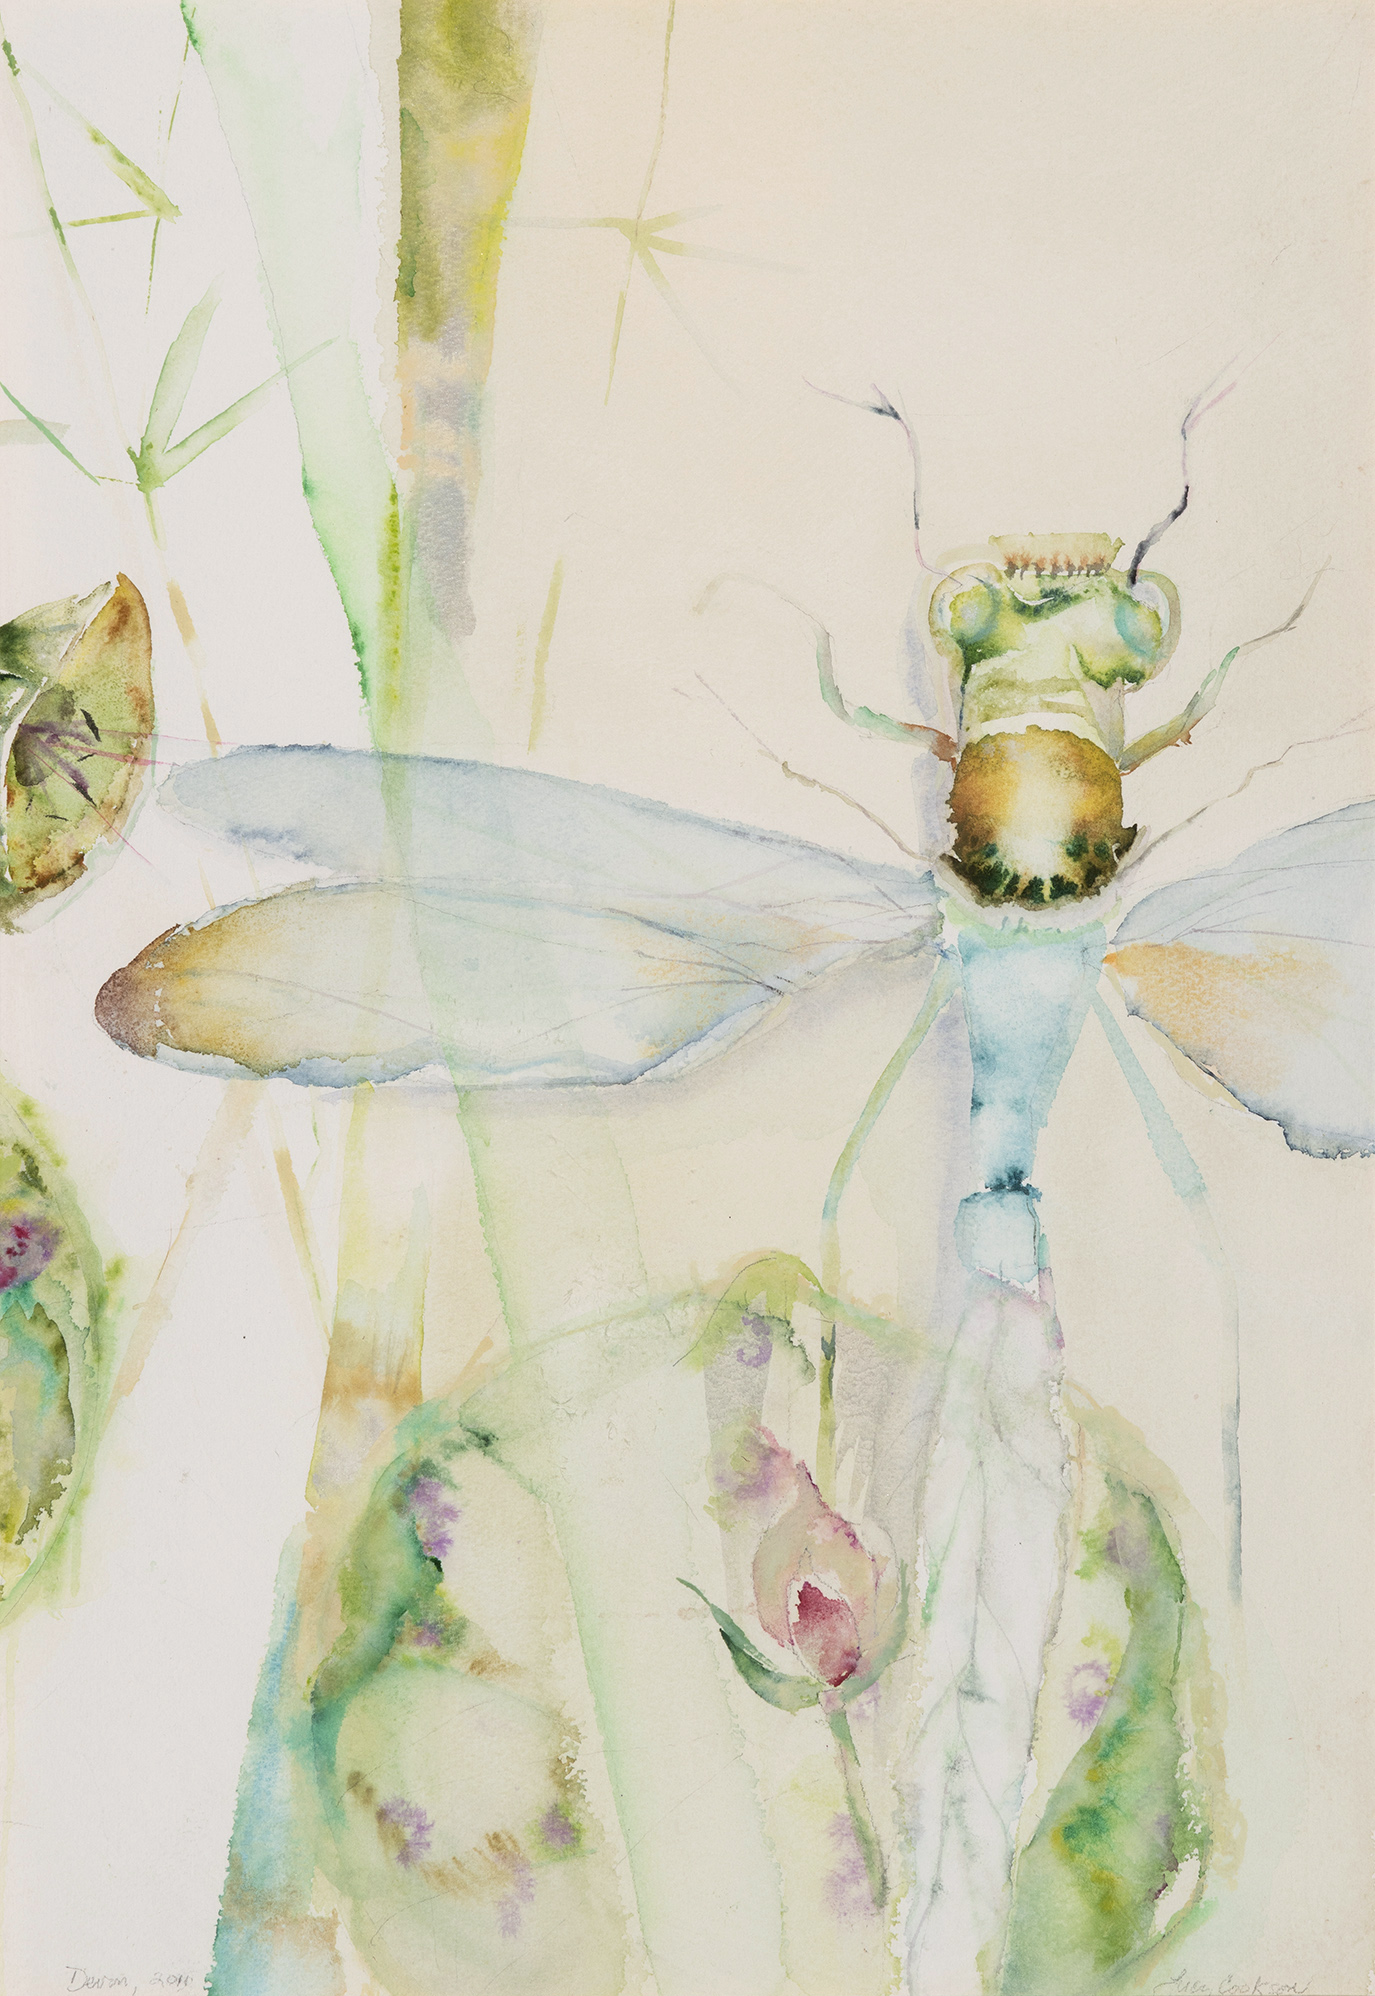 Dragonfly over Lotus, 2011, Watercolor on paper, 21.5 x 12 in.